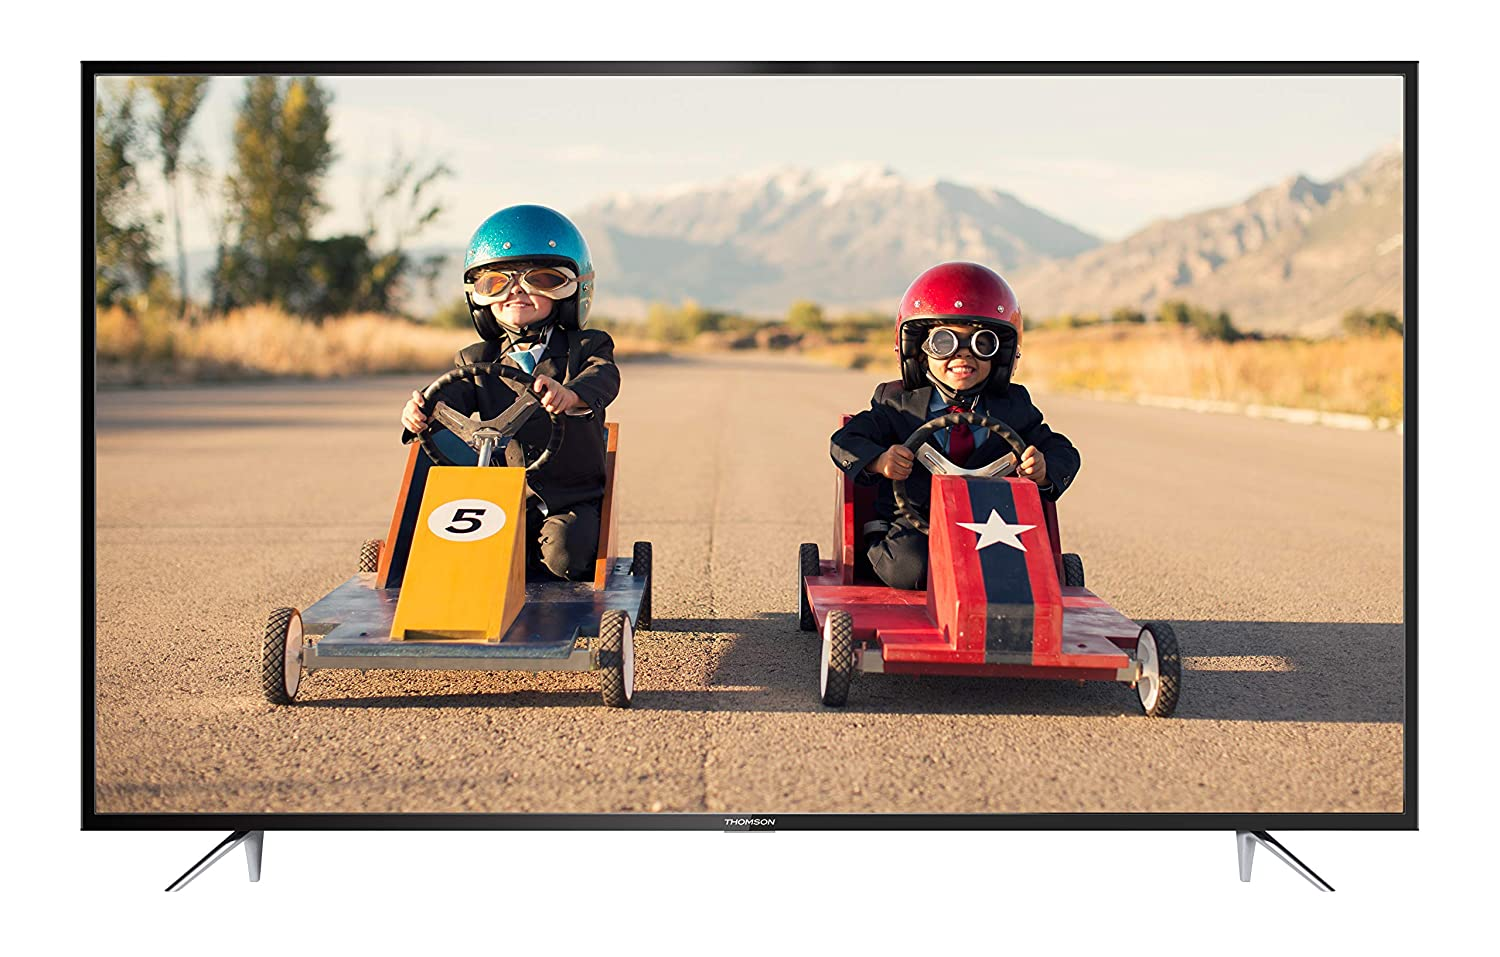 [amazon.de] Thomson 43UC6326 109 cm 4k televizija za 245€